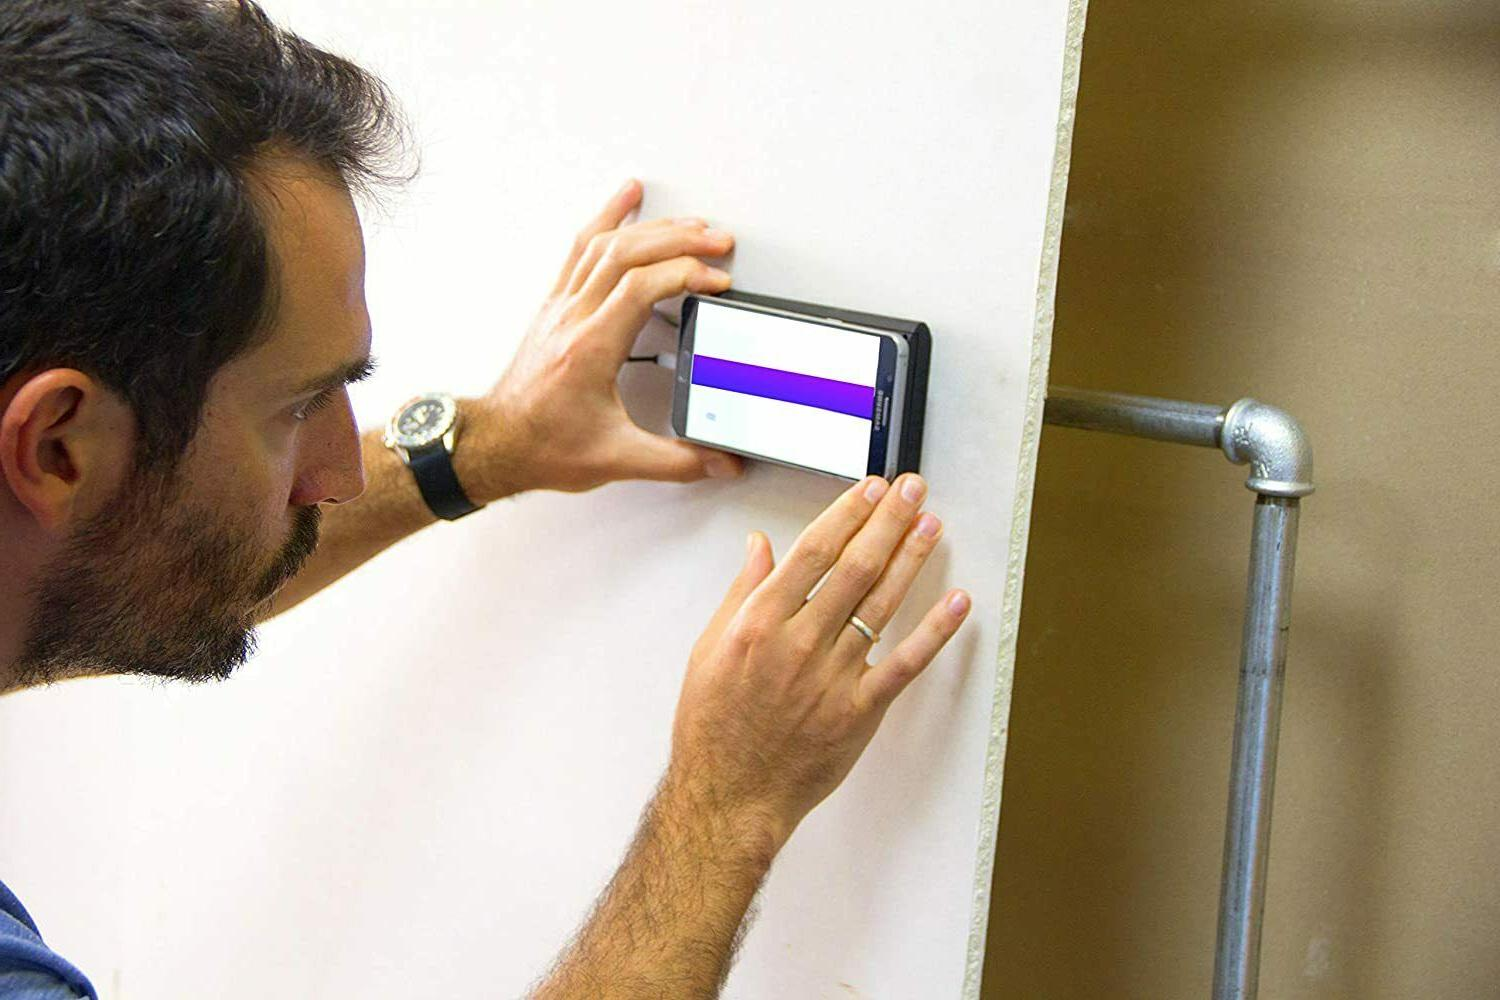 DIY, In-Wall Imager, Cell Phone Scanner & Wires